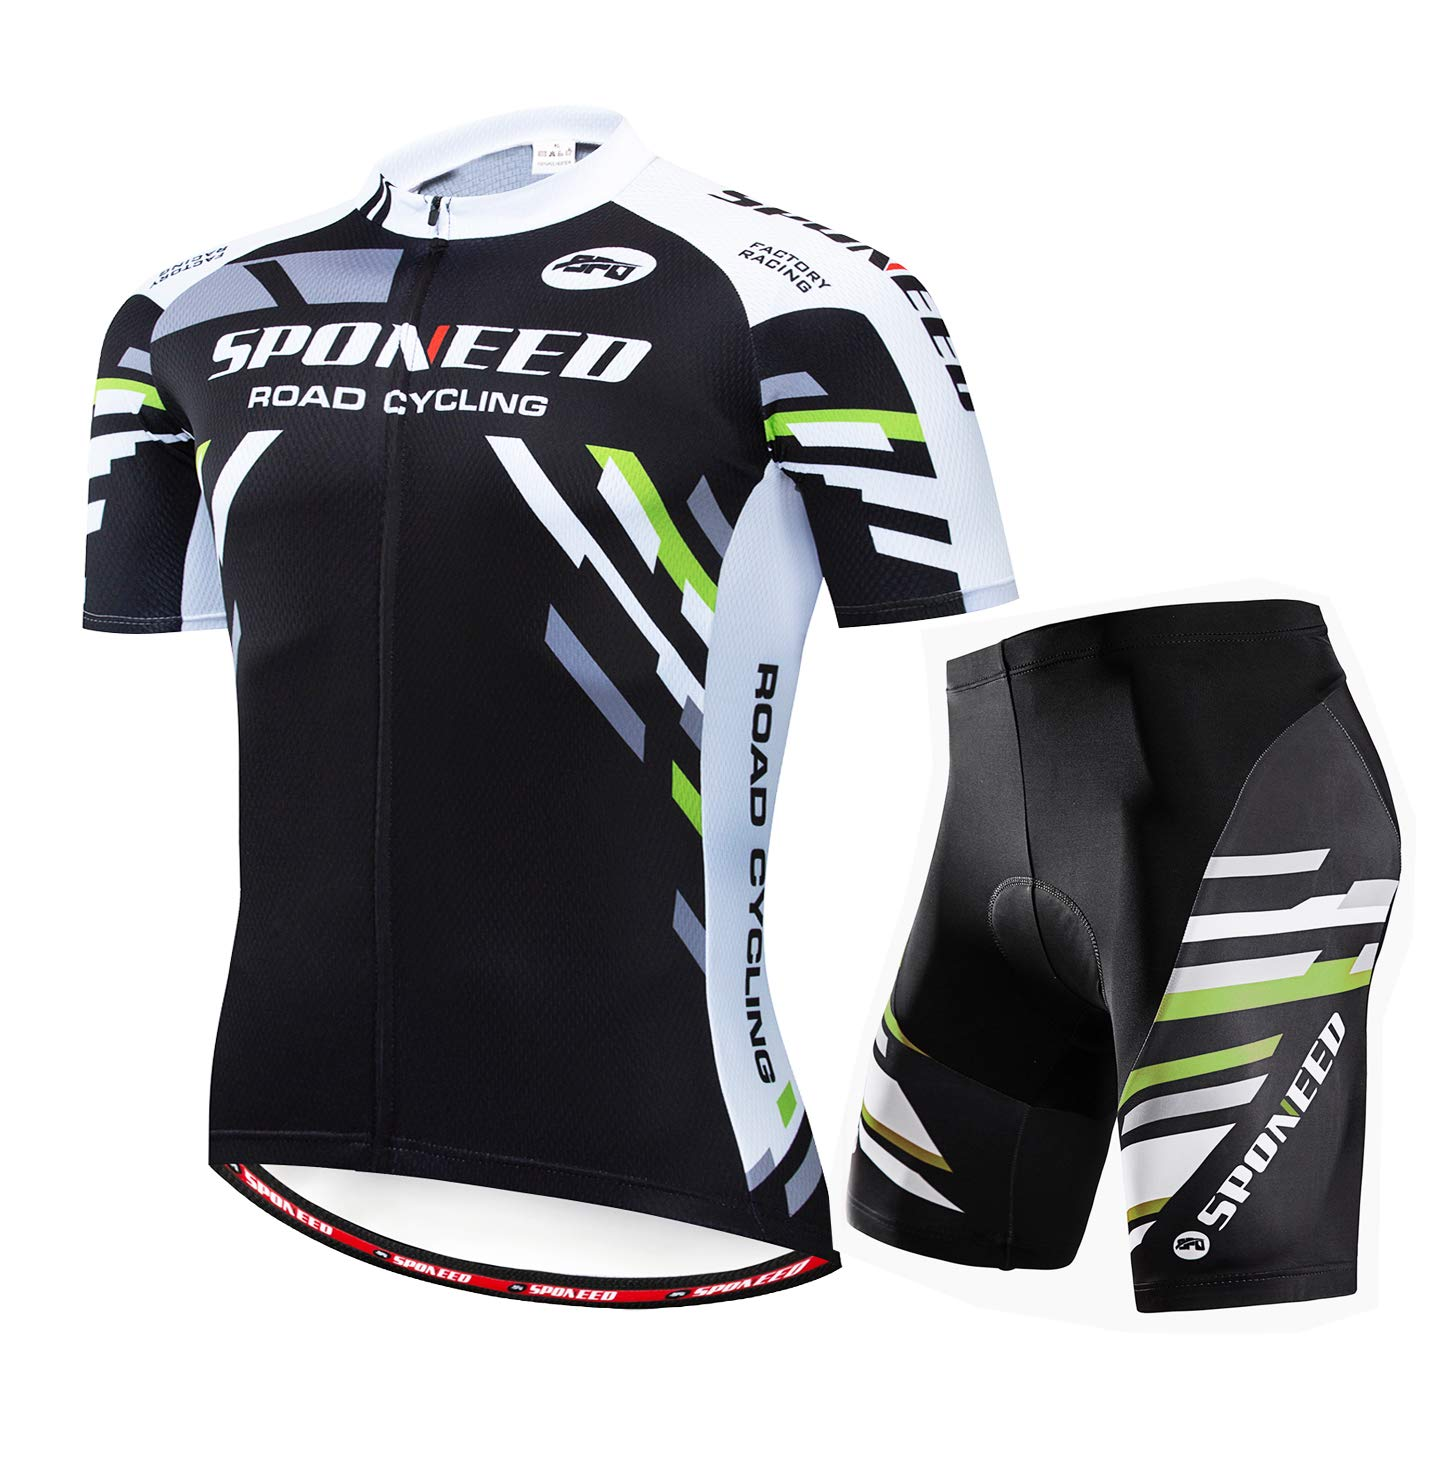 Sponeed Men's Cycling Jersey Suits Bike Shorts Padded Road Racing Cycle Uniforms US Small